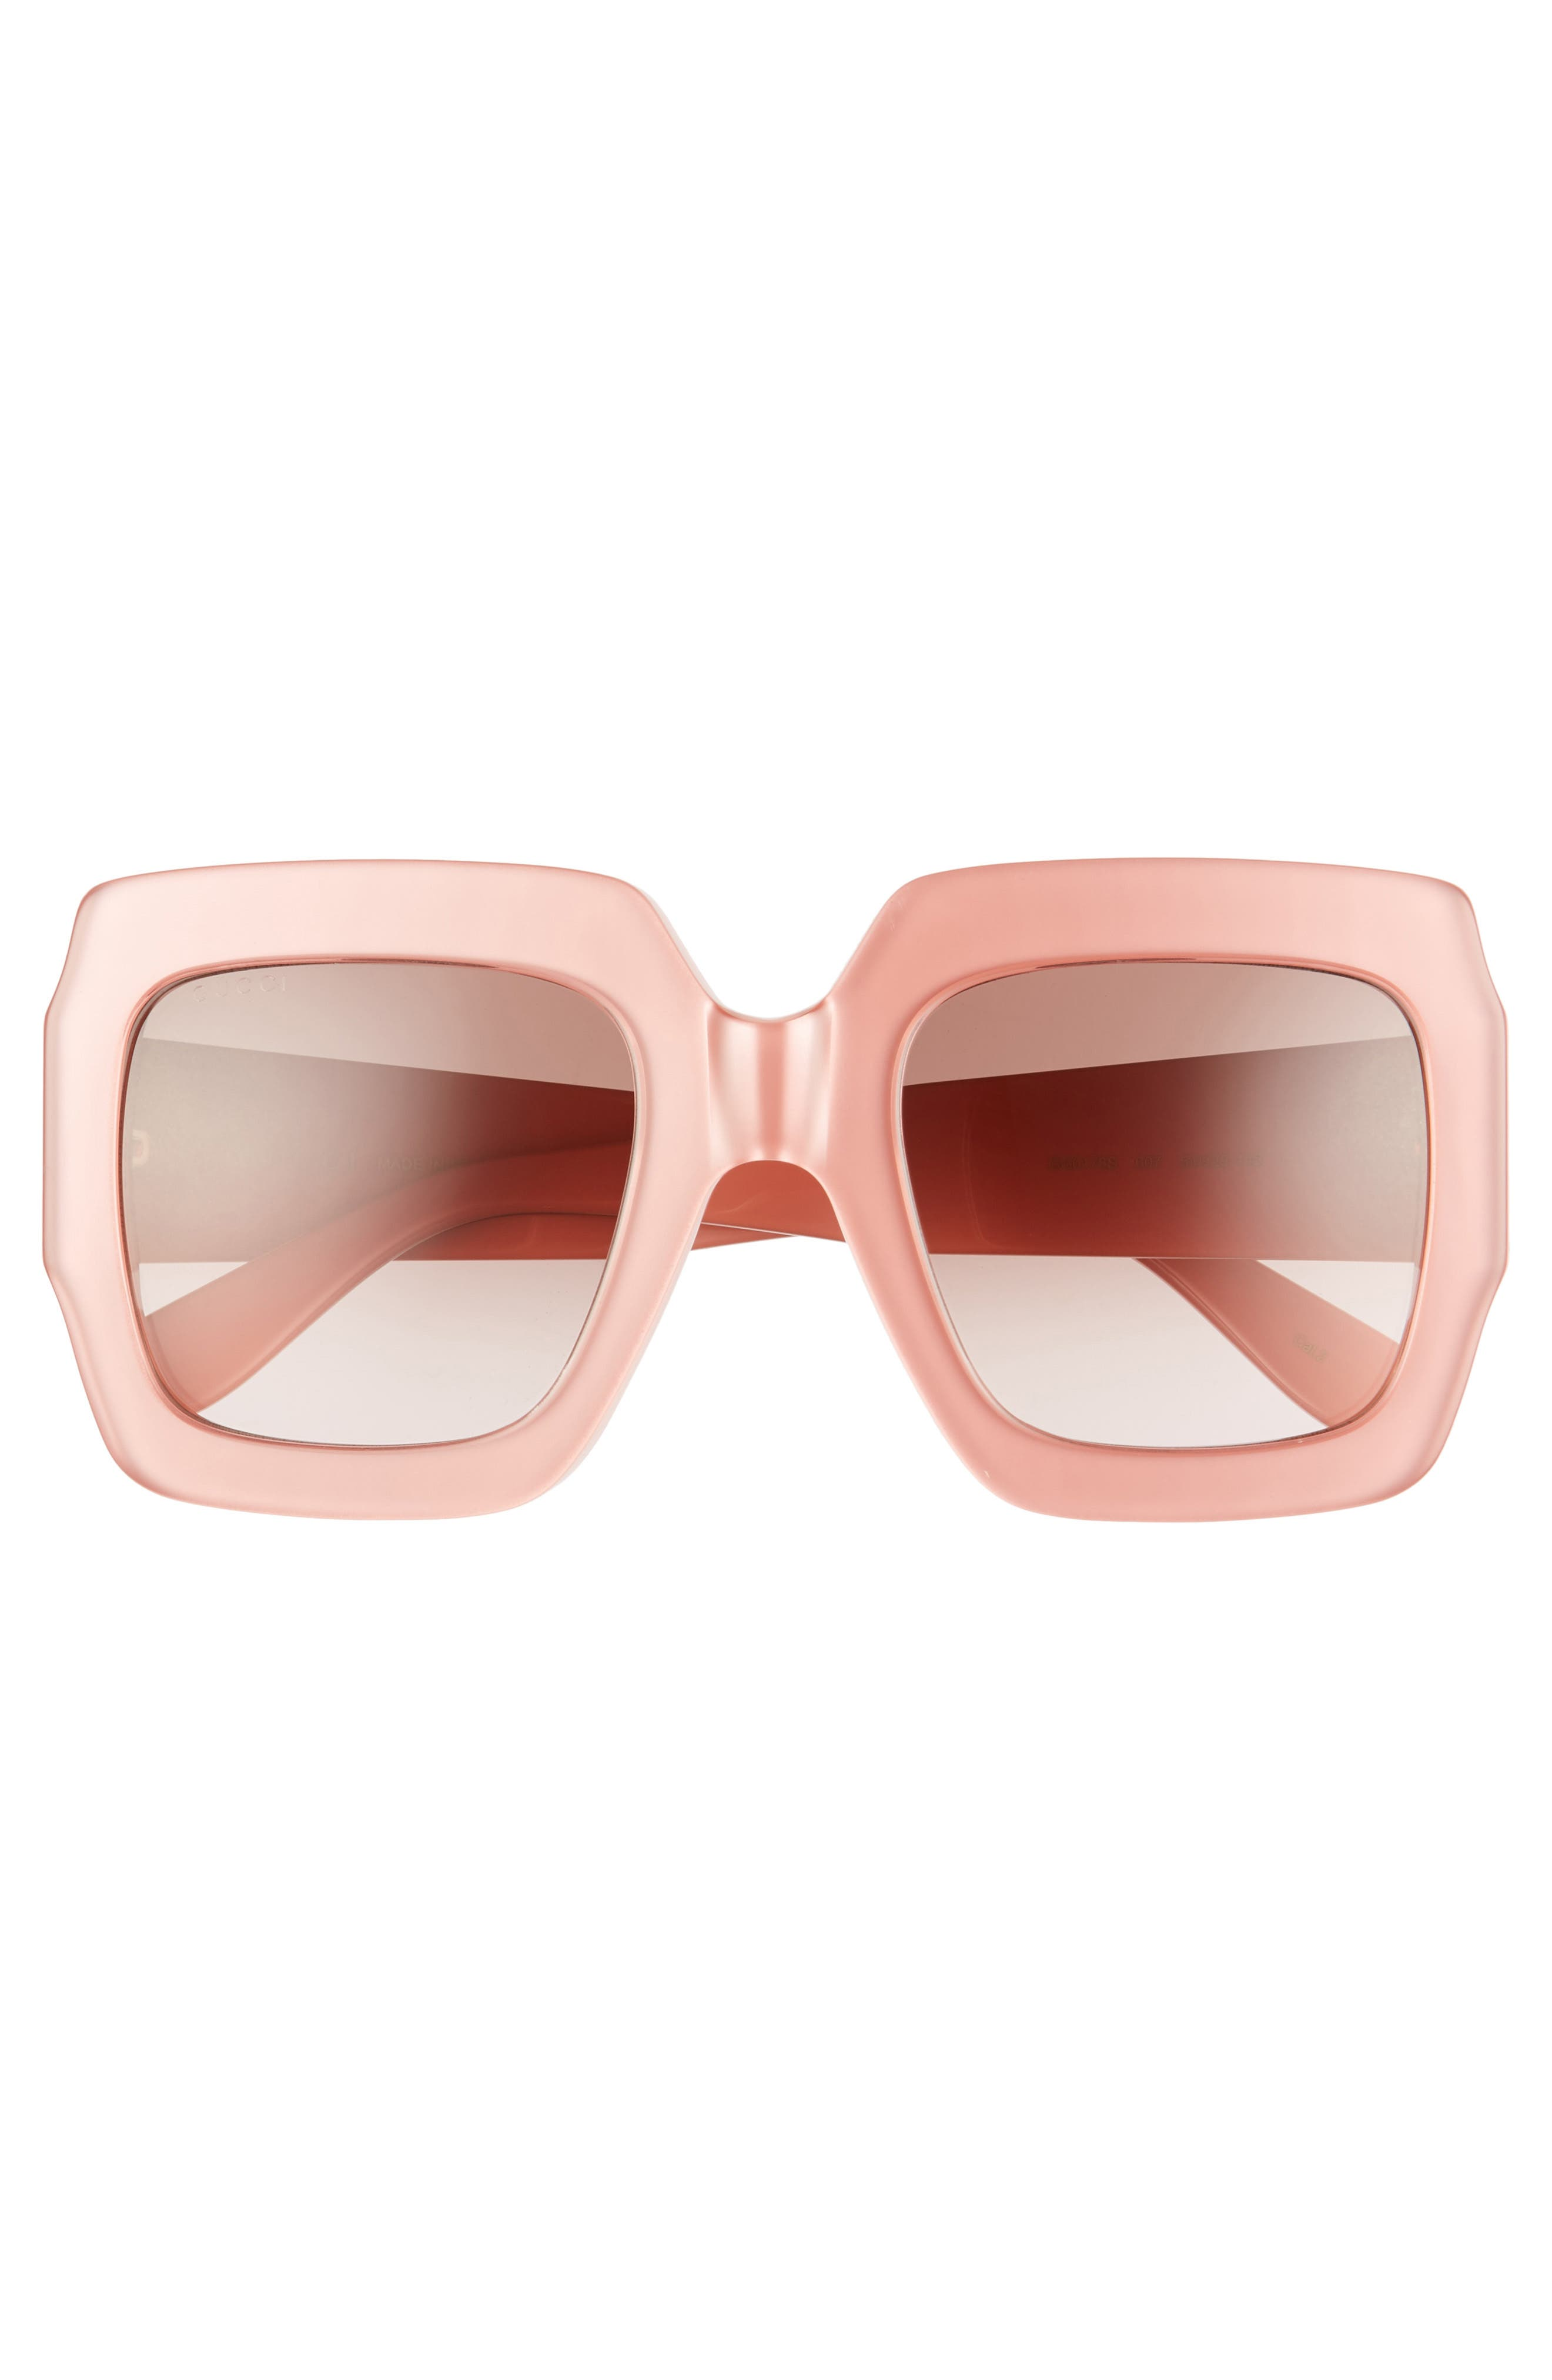 GUCCI, 54mm Square Sunglasses, Alternate thumbnail 3, color, SHNY MULTLAY GLOSS ROSE/BRN